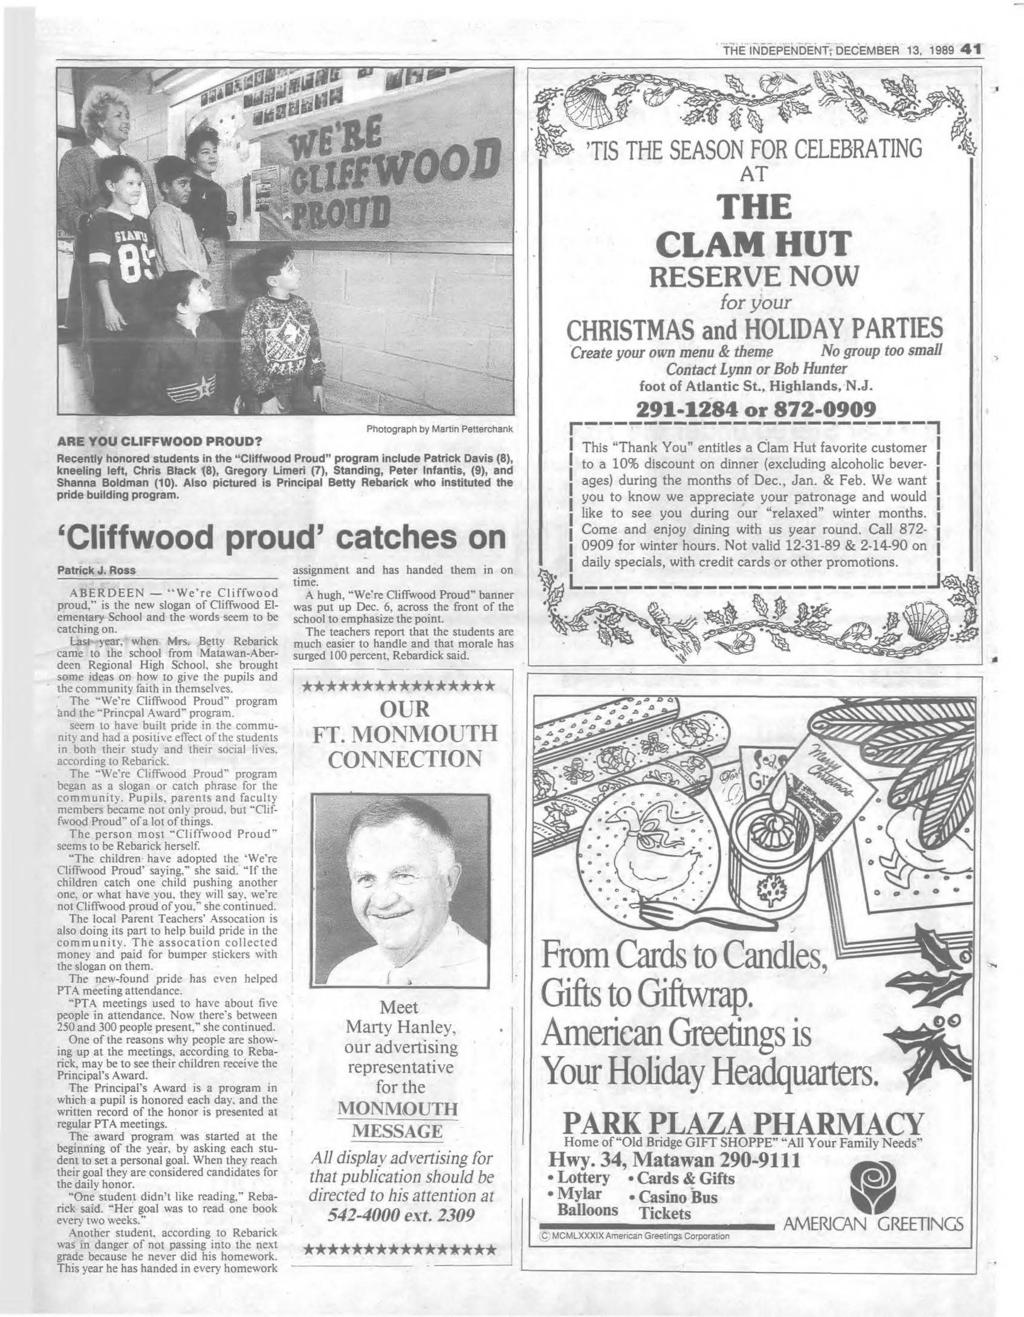 THE INDEPENDENT; DECEM BER 13, 1989 4 1 w T I S T H E S E A S O N F O R C E L E B R A T I N G % A T THE CLAM HUT R E S E R V E N O W for your CHRISTMAS and HOLIDAY PARTIES C r e a t e y o u r o w n m